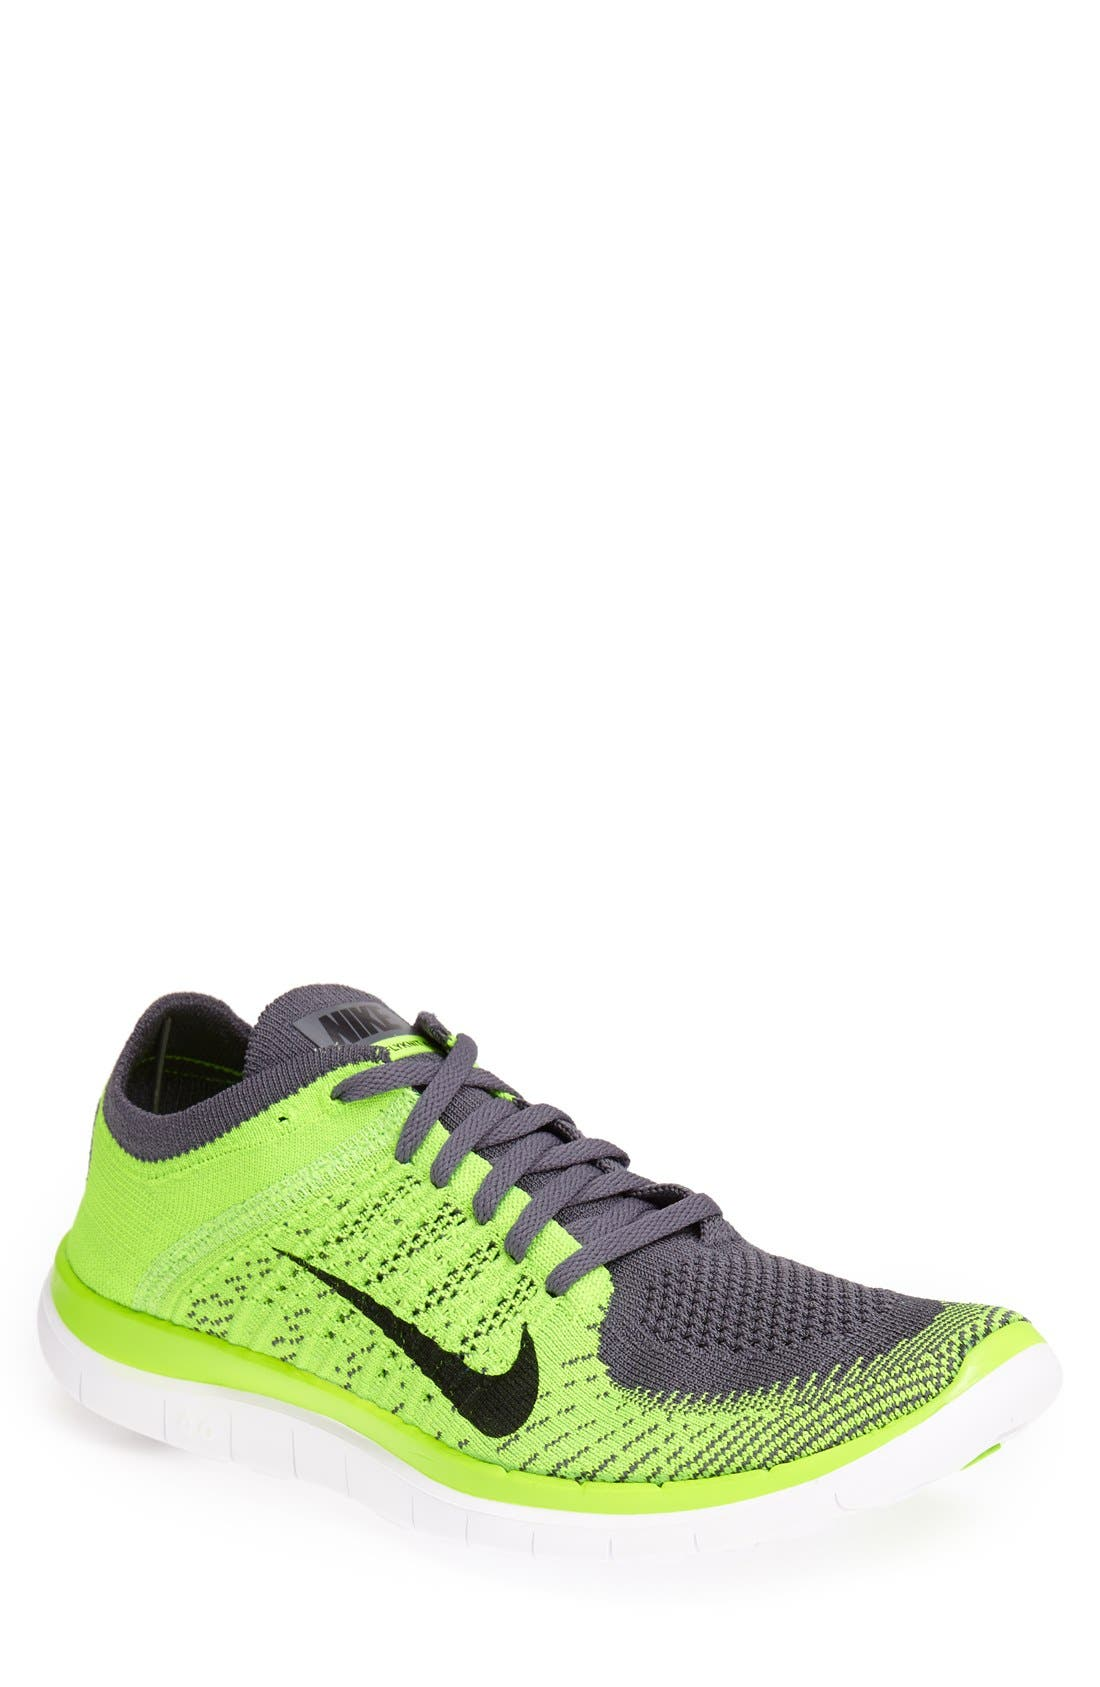 Alternate Image 1 Selected - Nike 'Free 4.0 Flyknit' Running Shoe (Men)